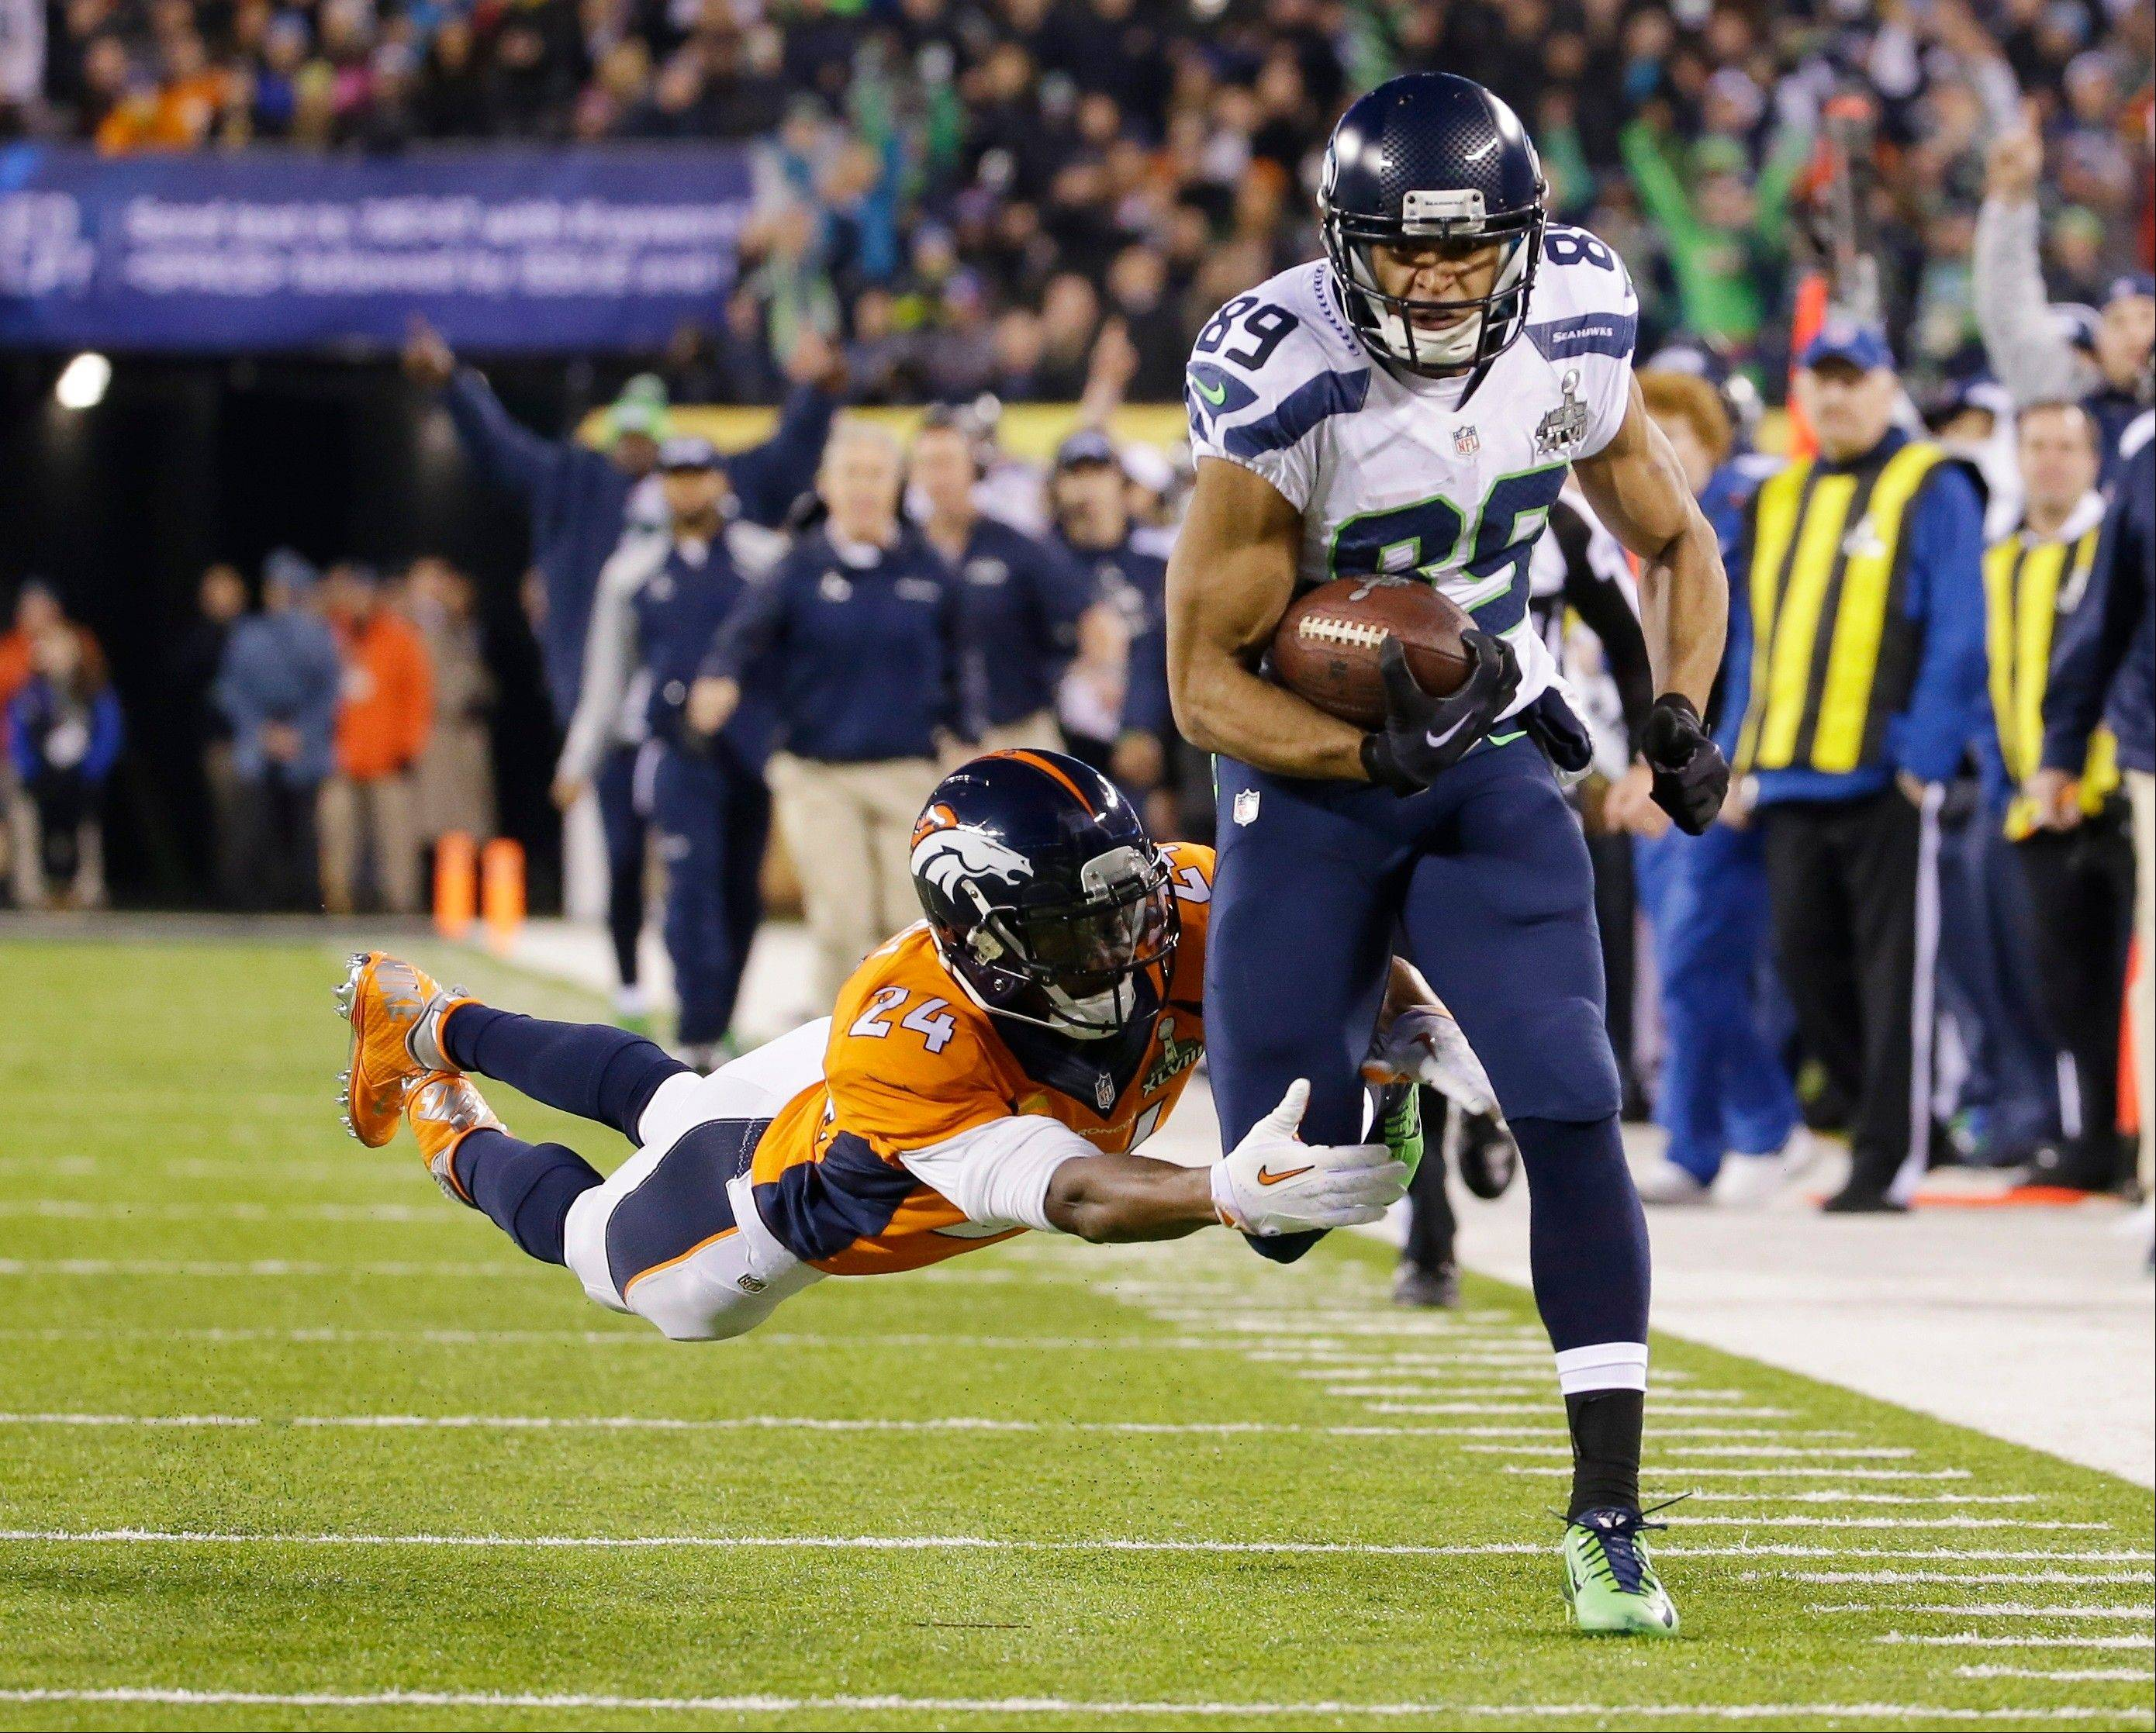 Seattle Seahawks' Doug Baldwin (89) runs from Denver Broncos' Champ Bailey (24) after making a reception during the first half.